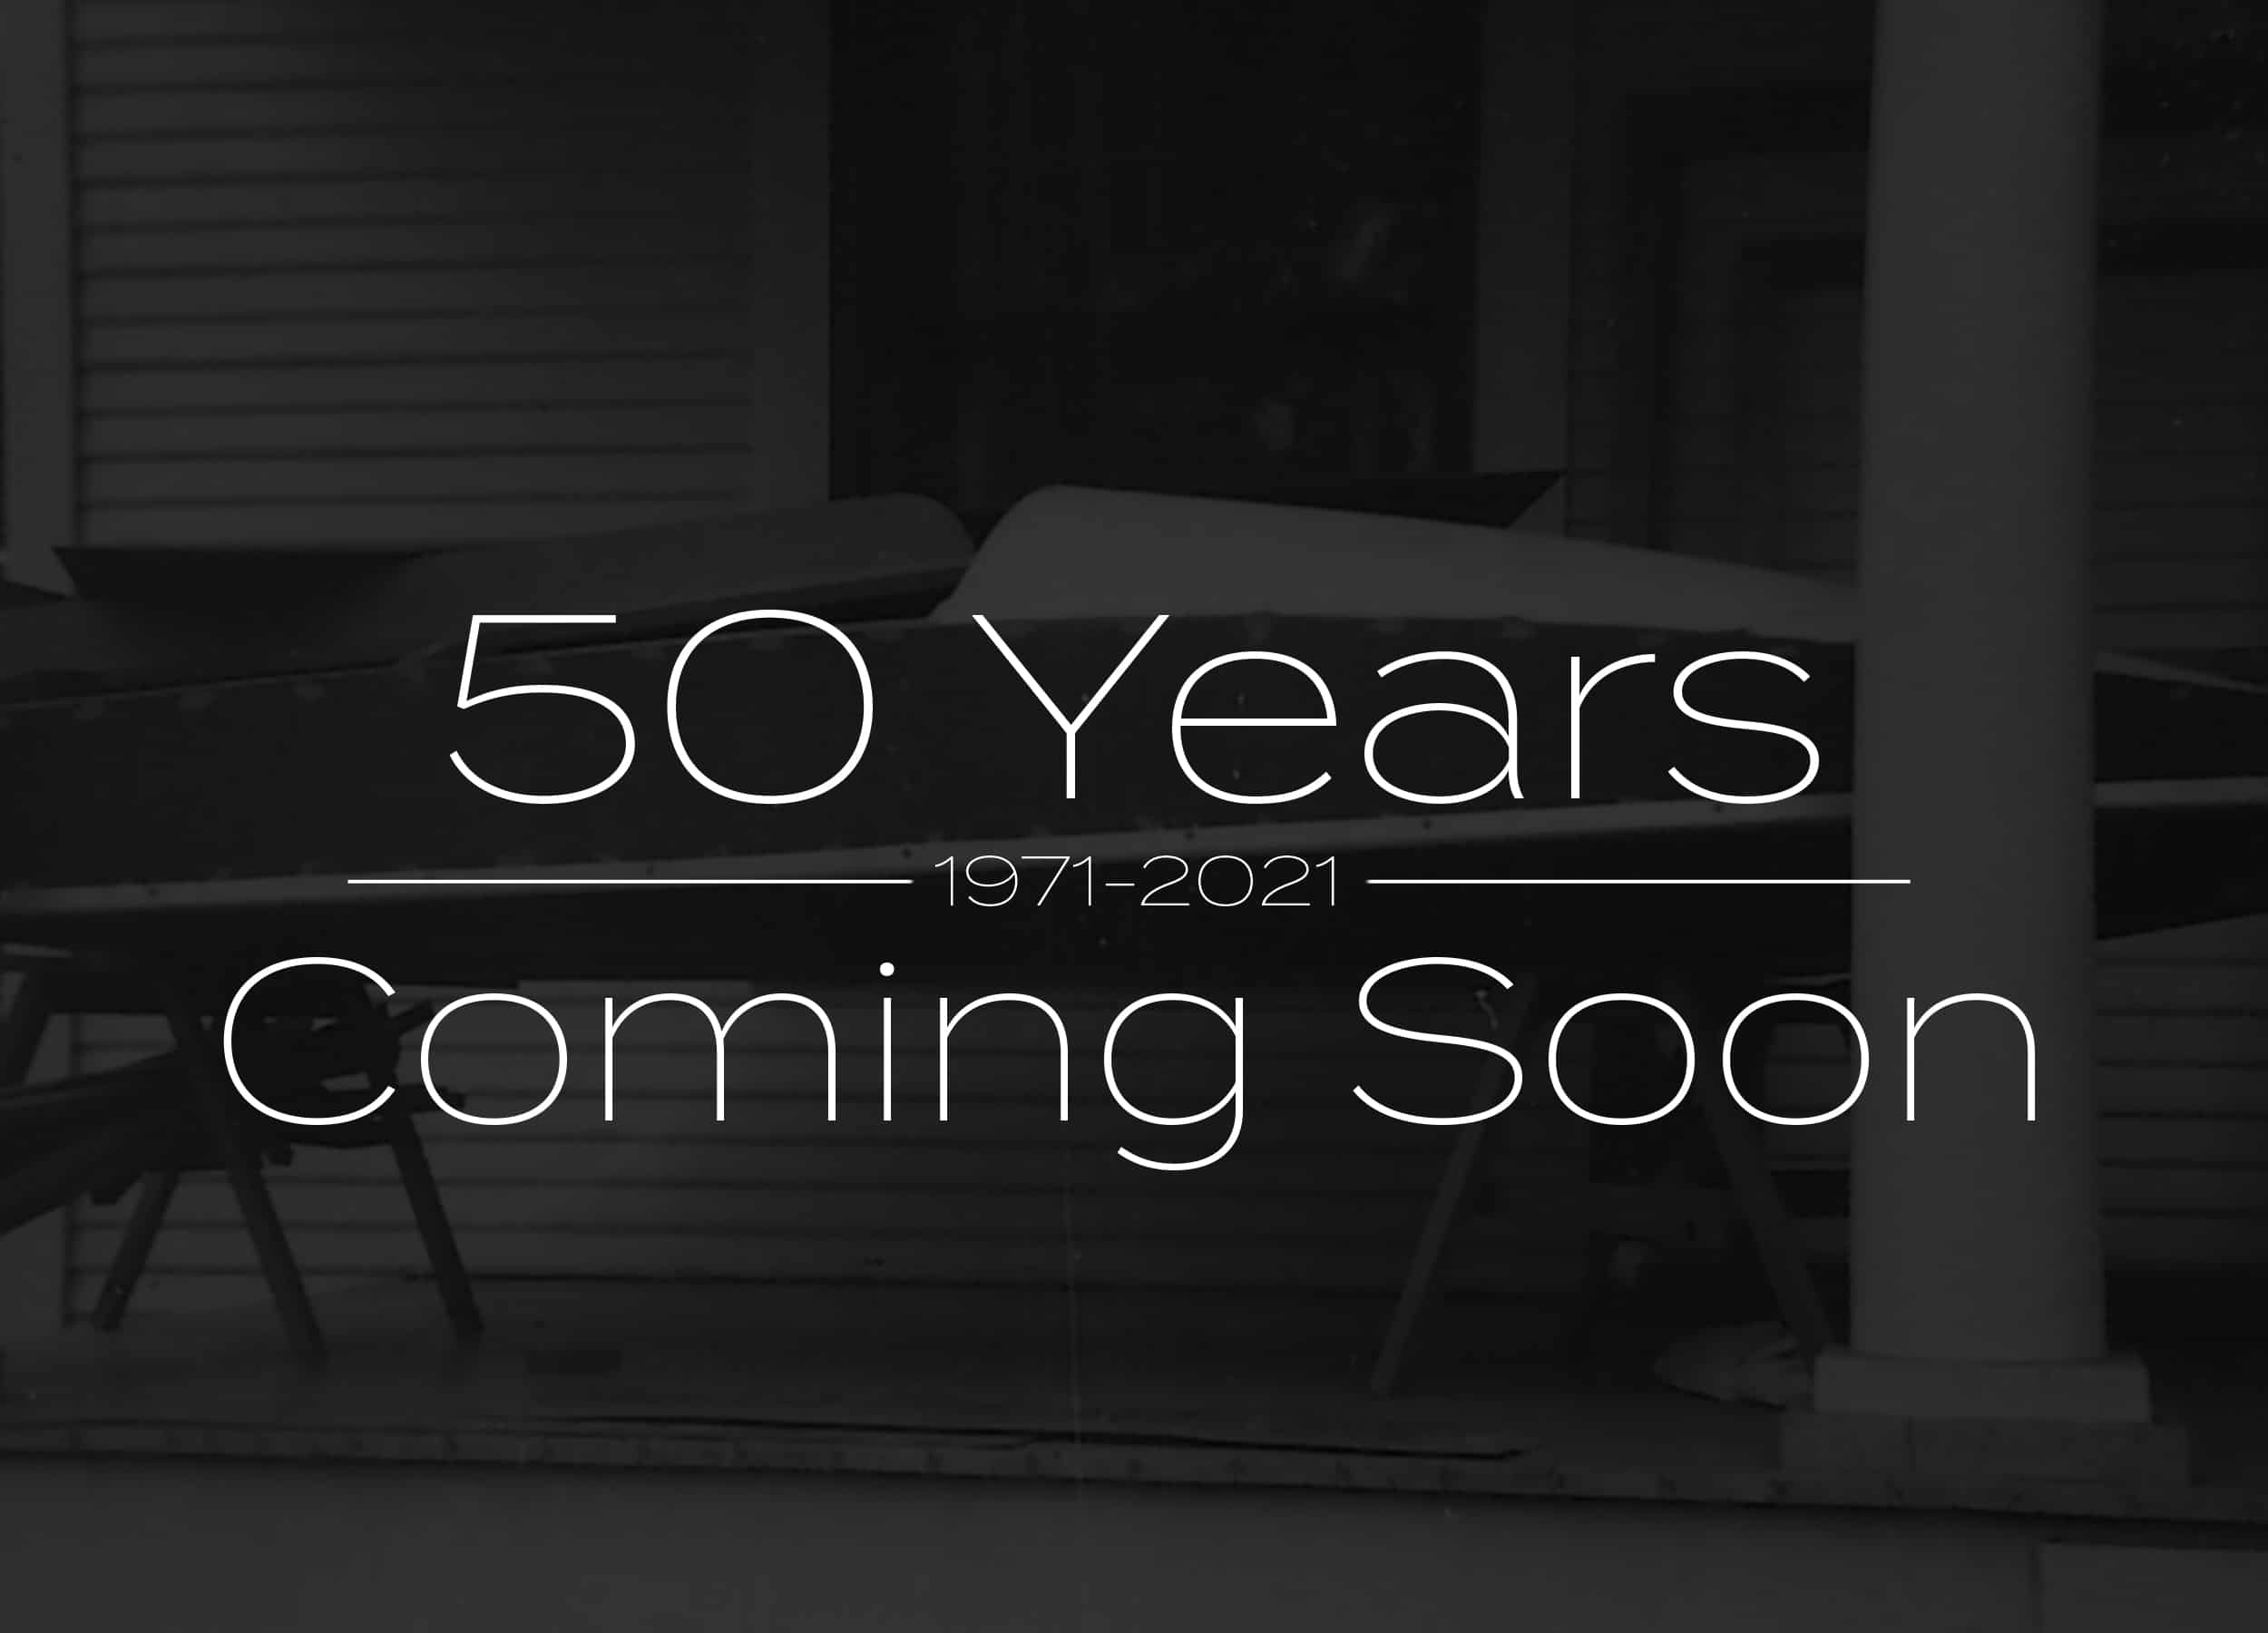 50 year story coming soon